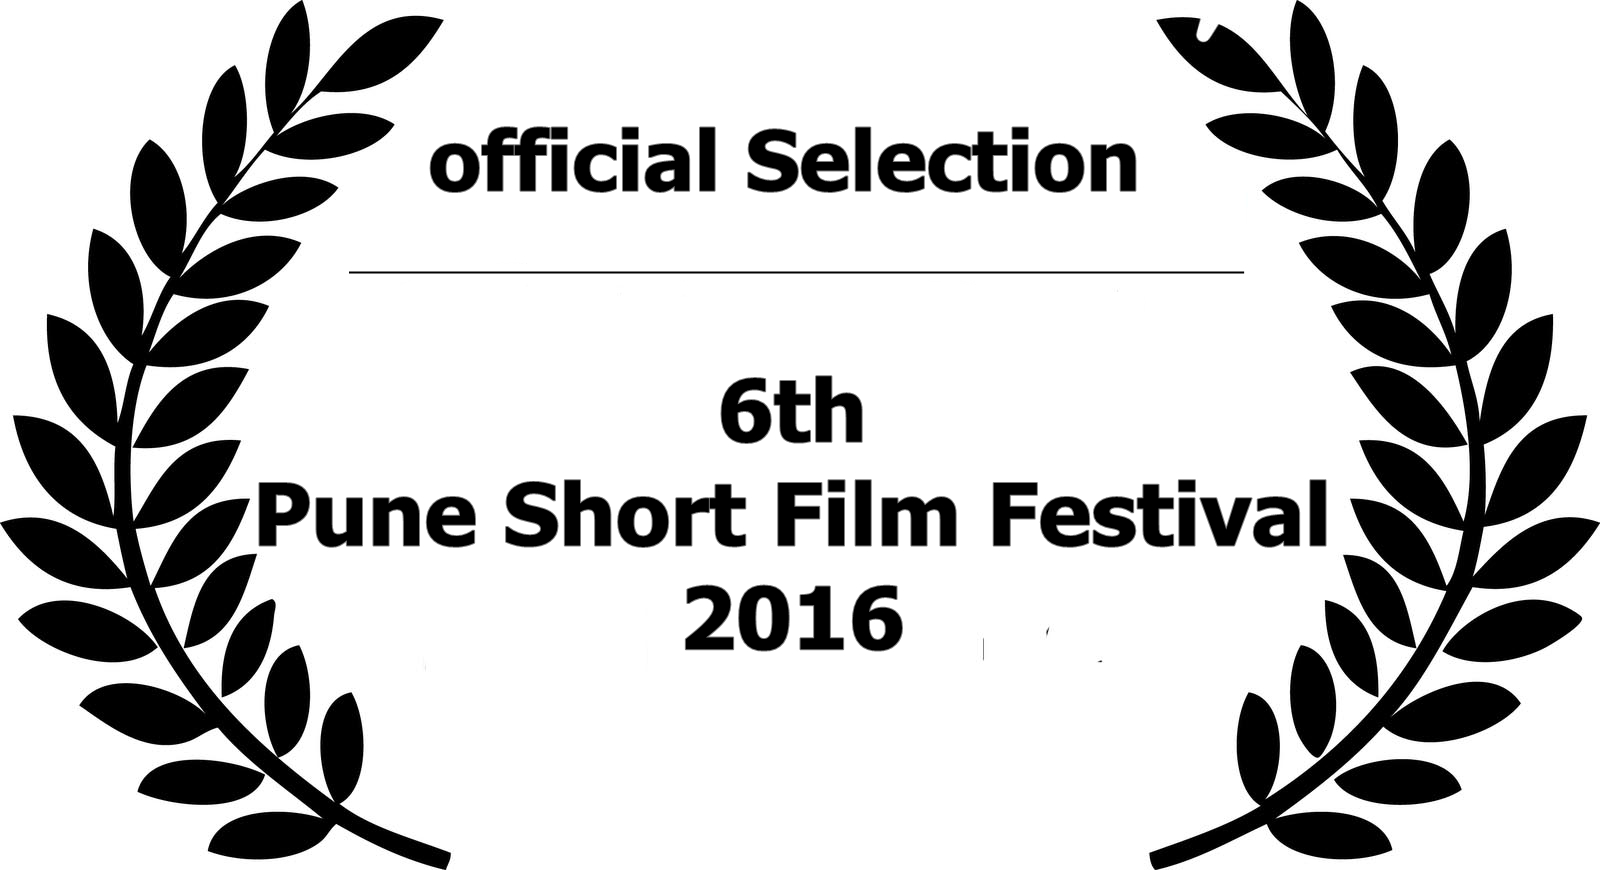 Pune-Official-Selection-LOGo